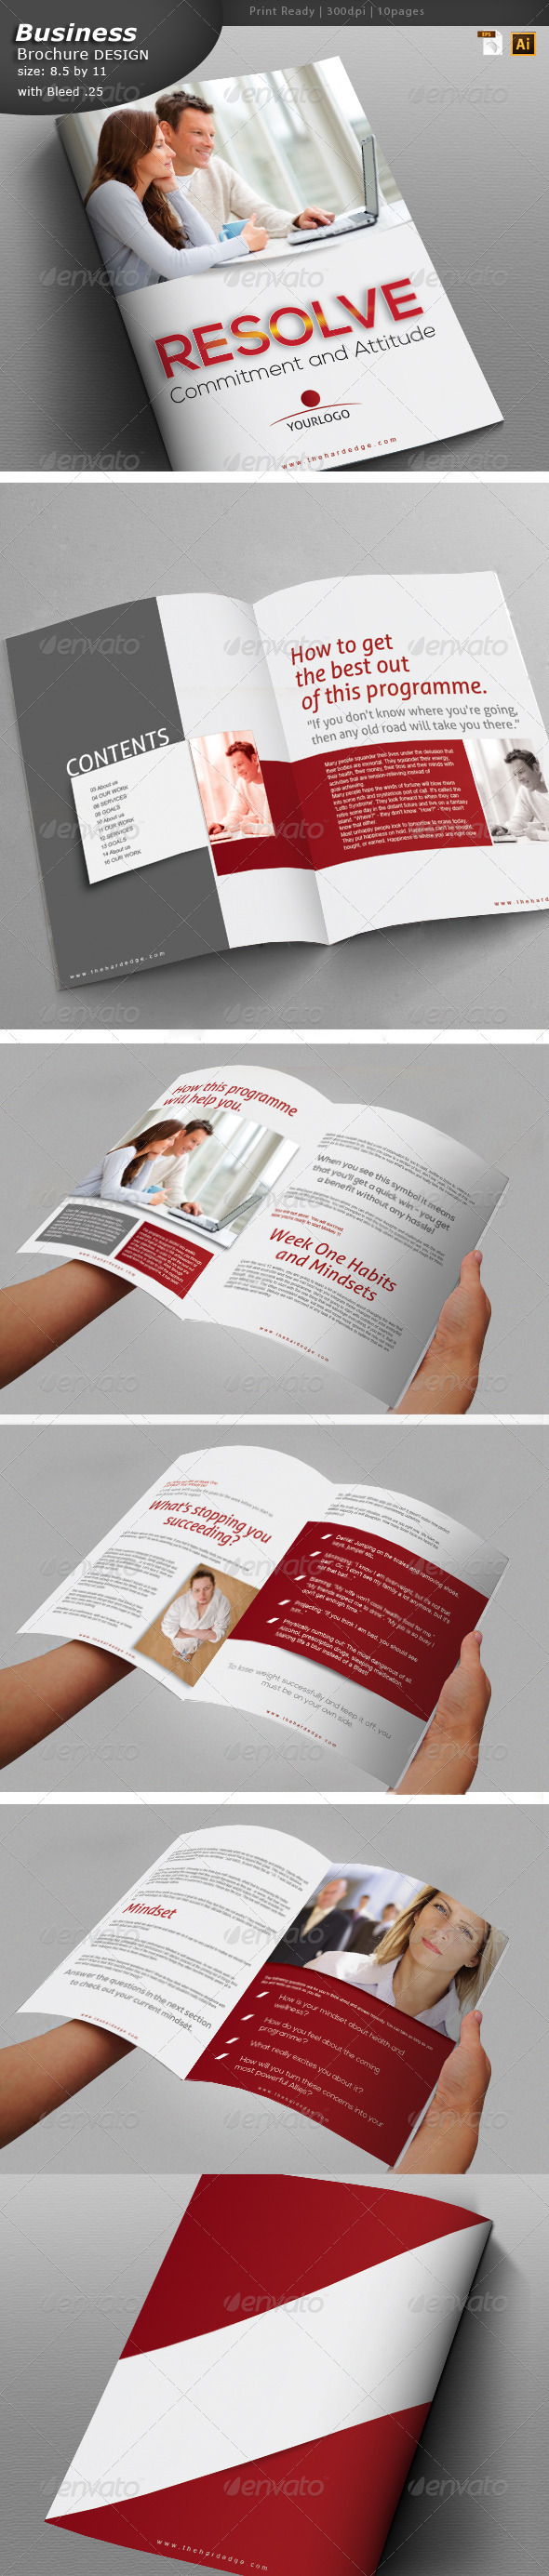 GraphicRiver Business Brochure Design 6132638